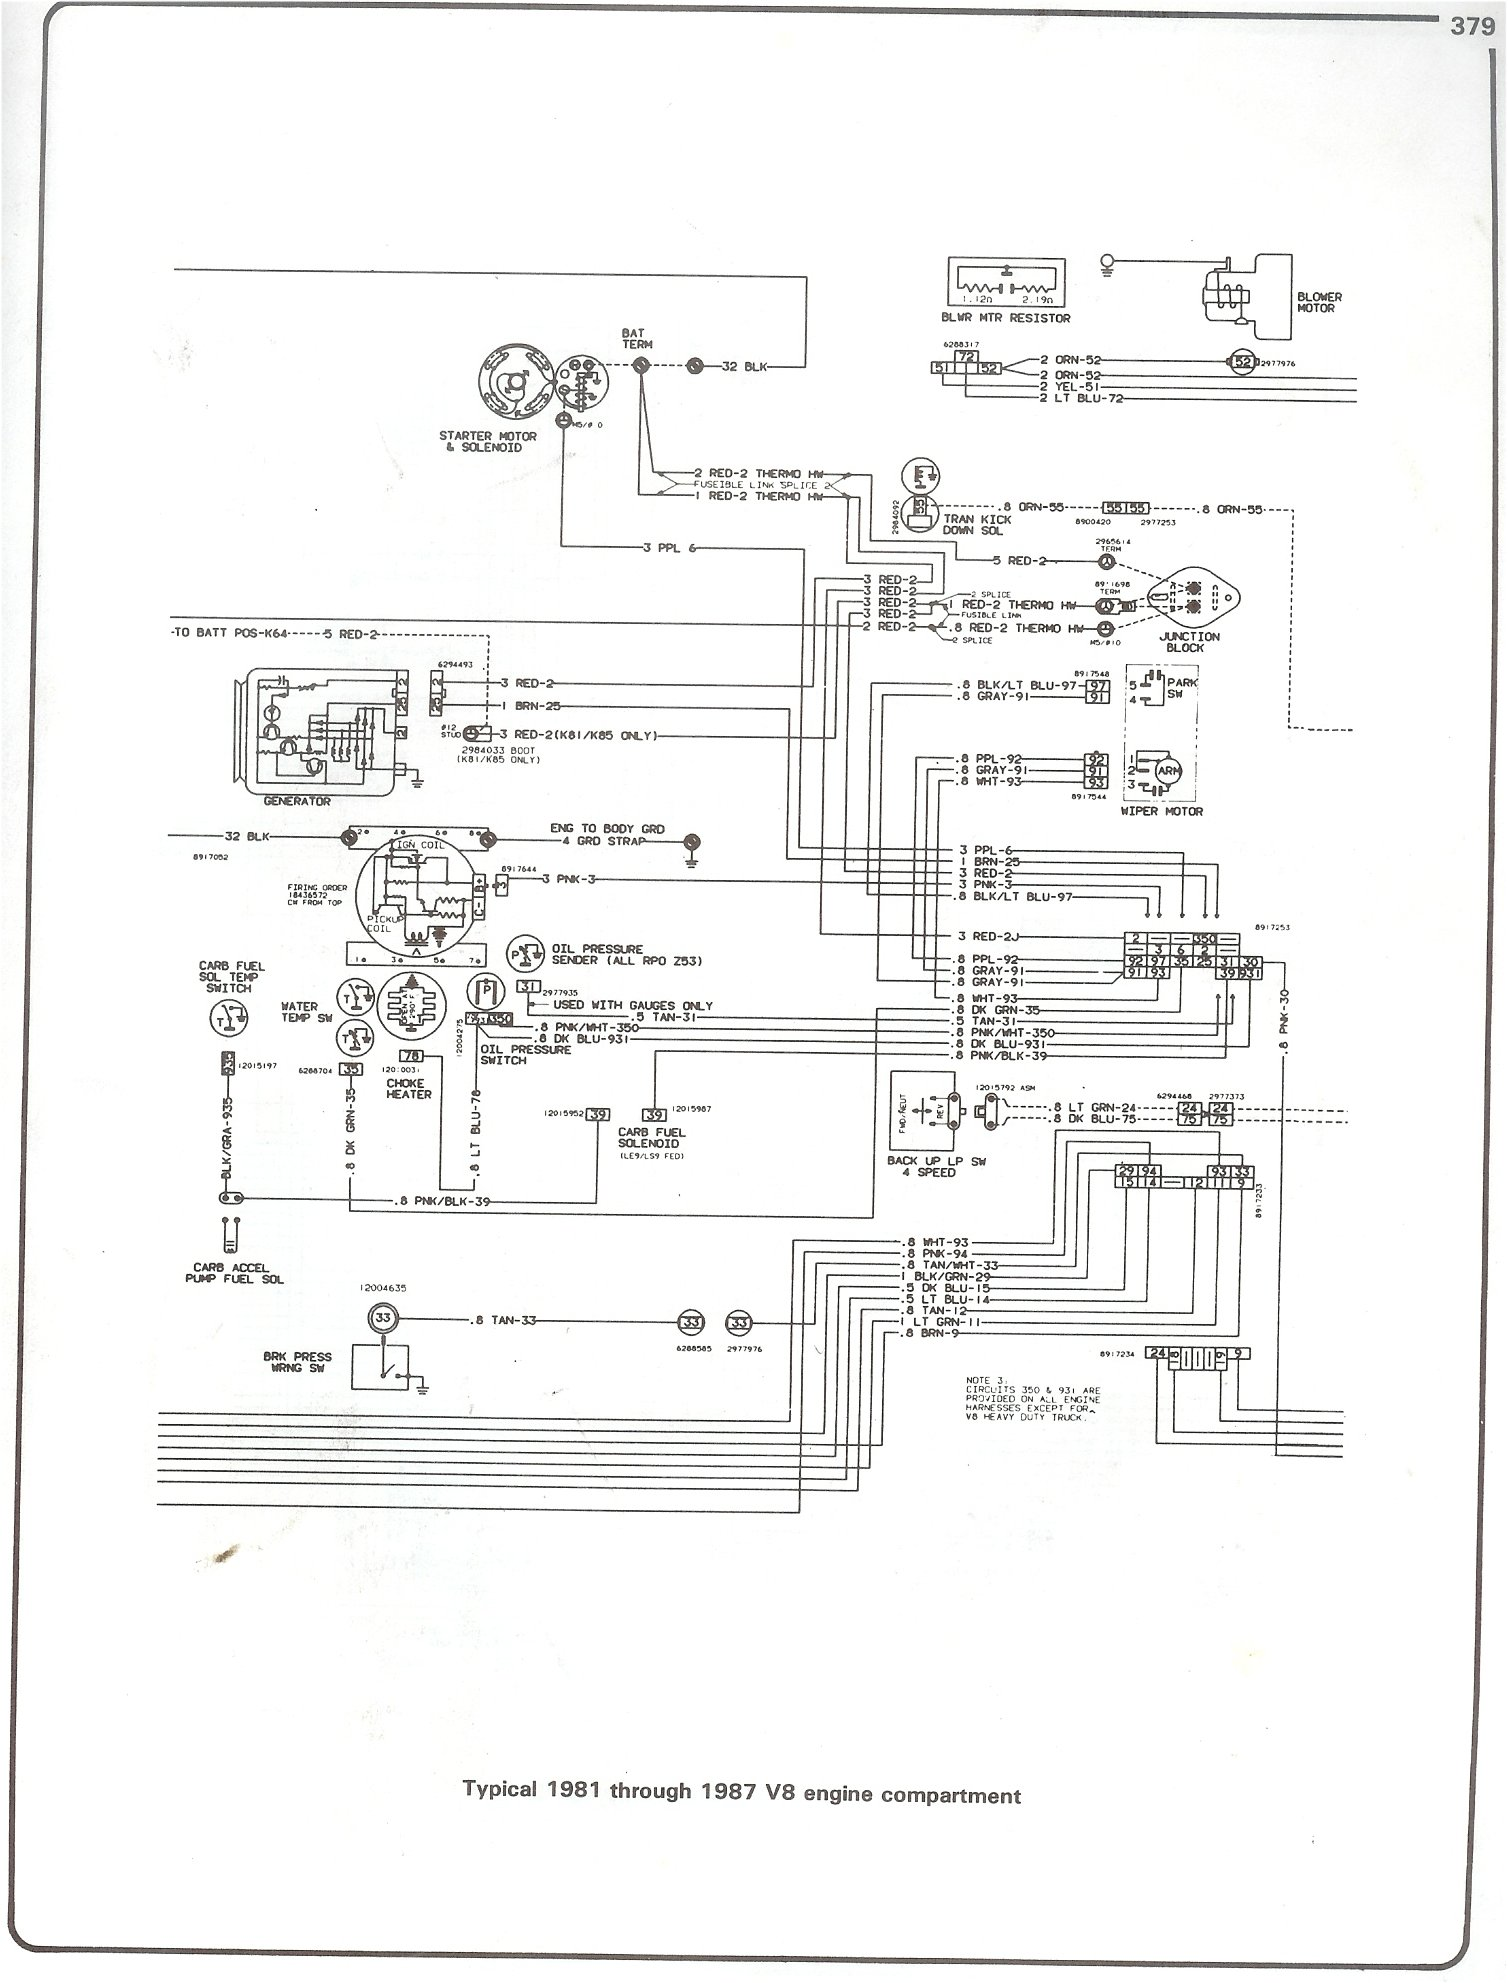 82 Gmc Sierra Wiring Diagrams Archive Of Automotive Diagram Schematic 1980 Chevy Truck Just Data Rh Ag Skiphire Co Uk